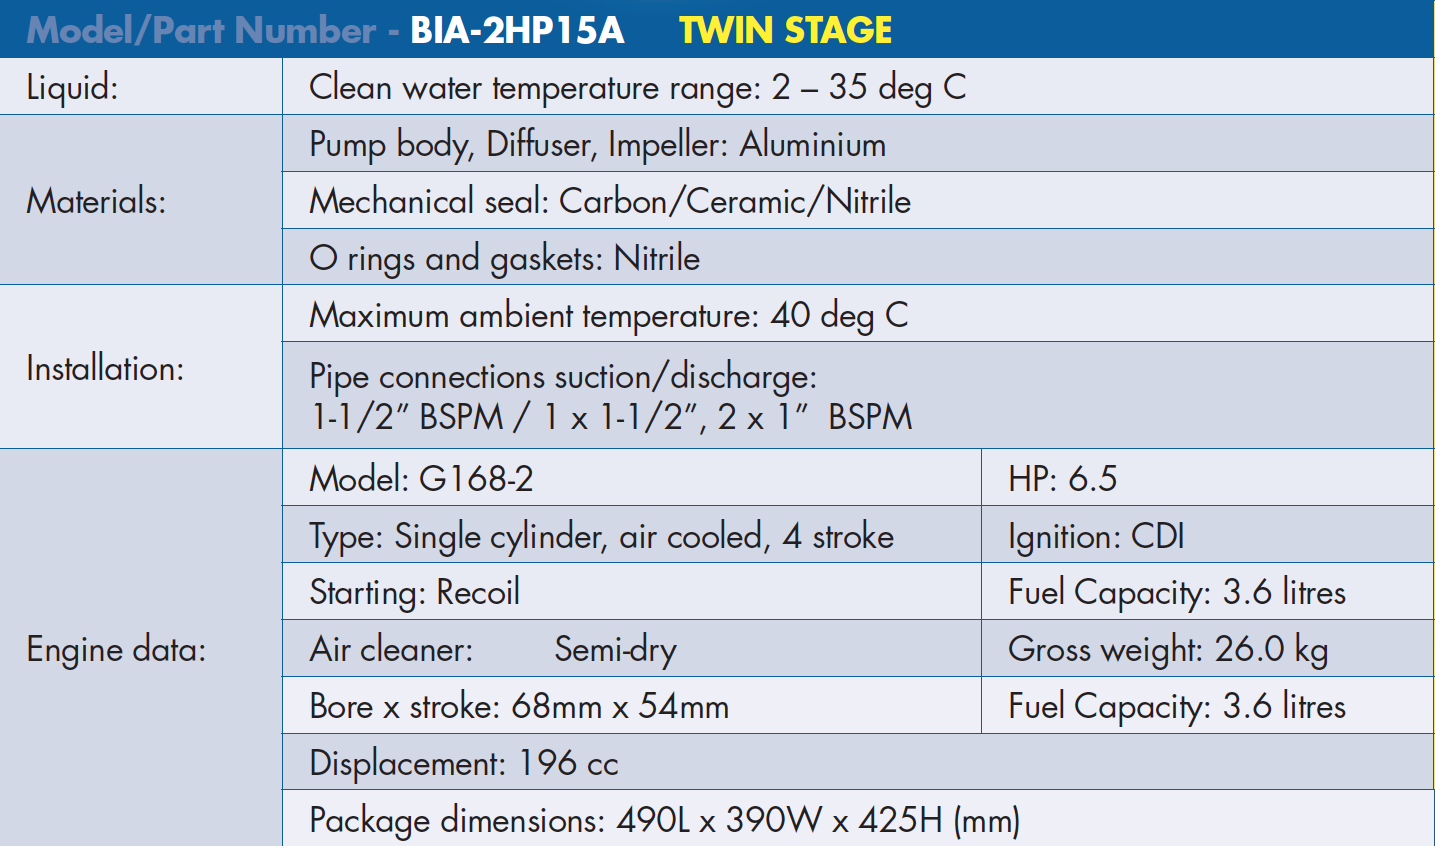 spec-bianco-bia-2hp15a-twin-stage.png